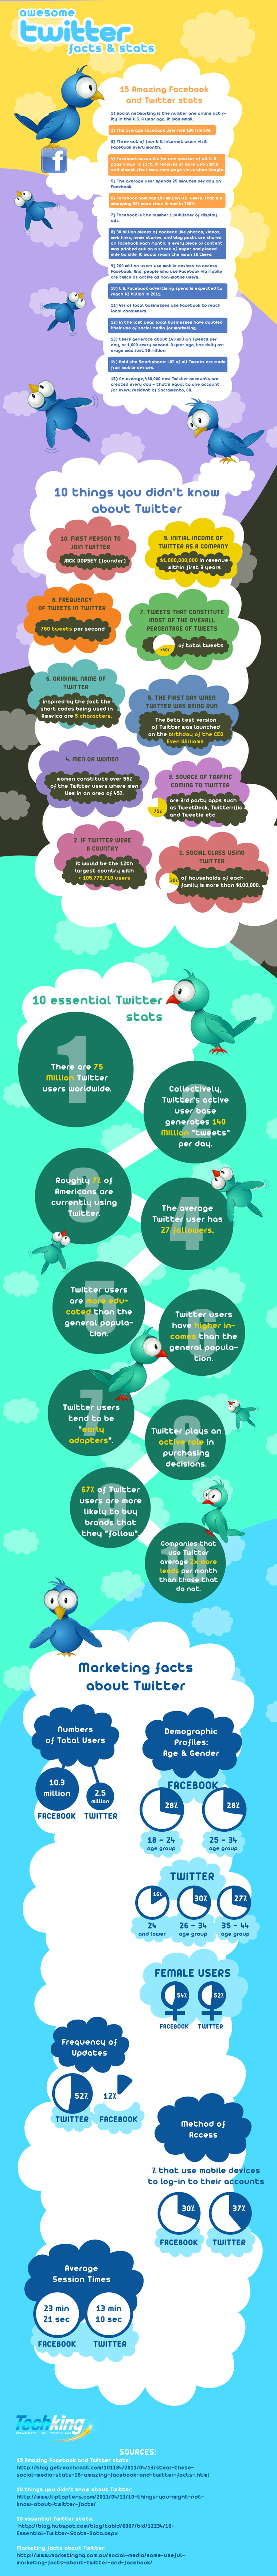 Infographic: Awesome Twitter Facts & Stats